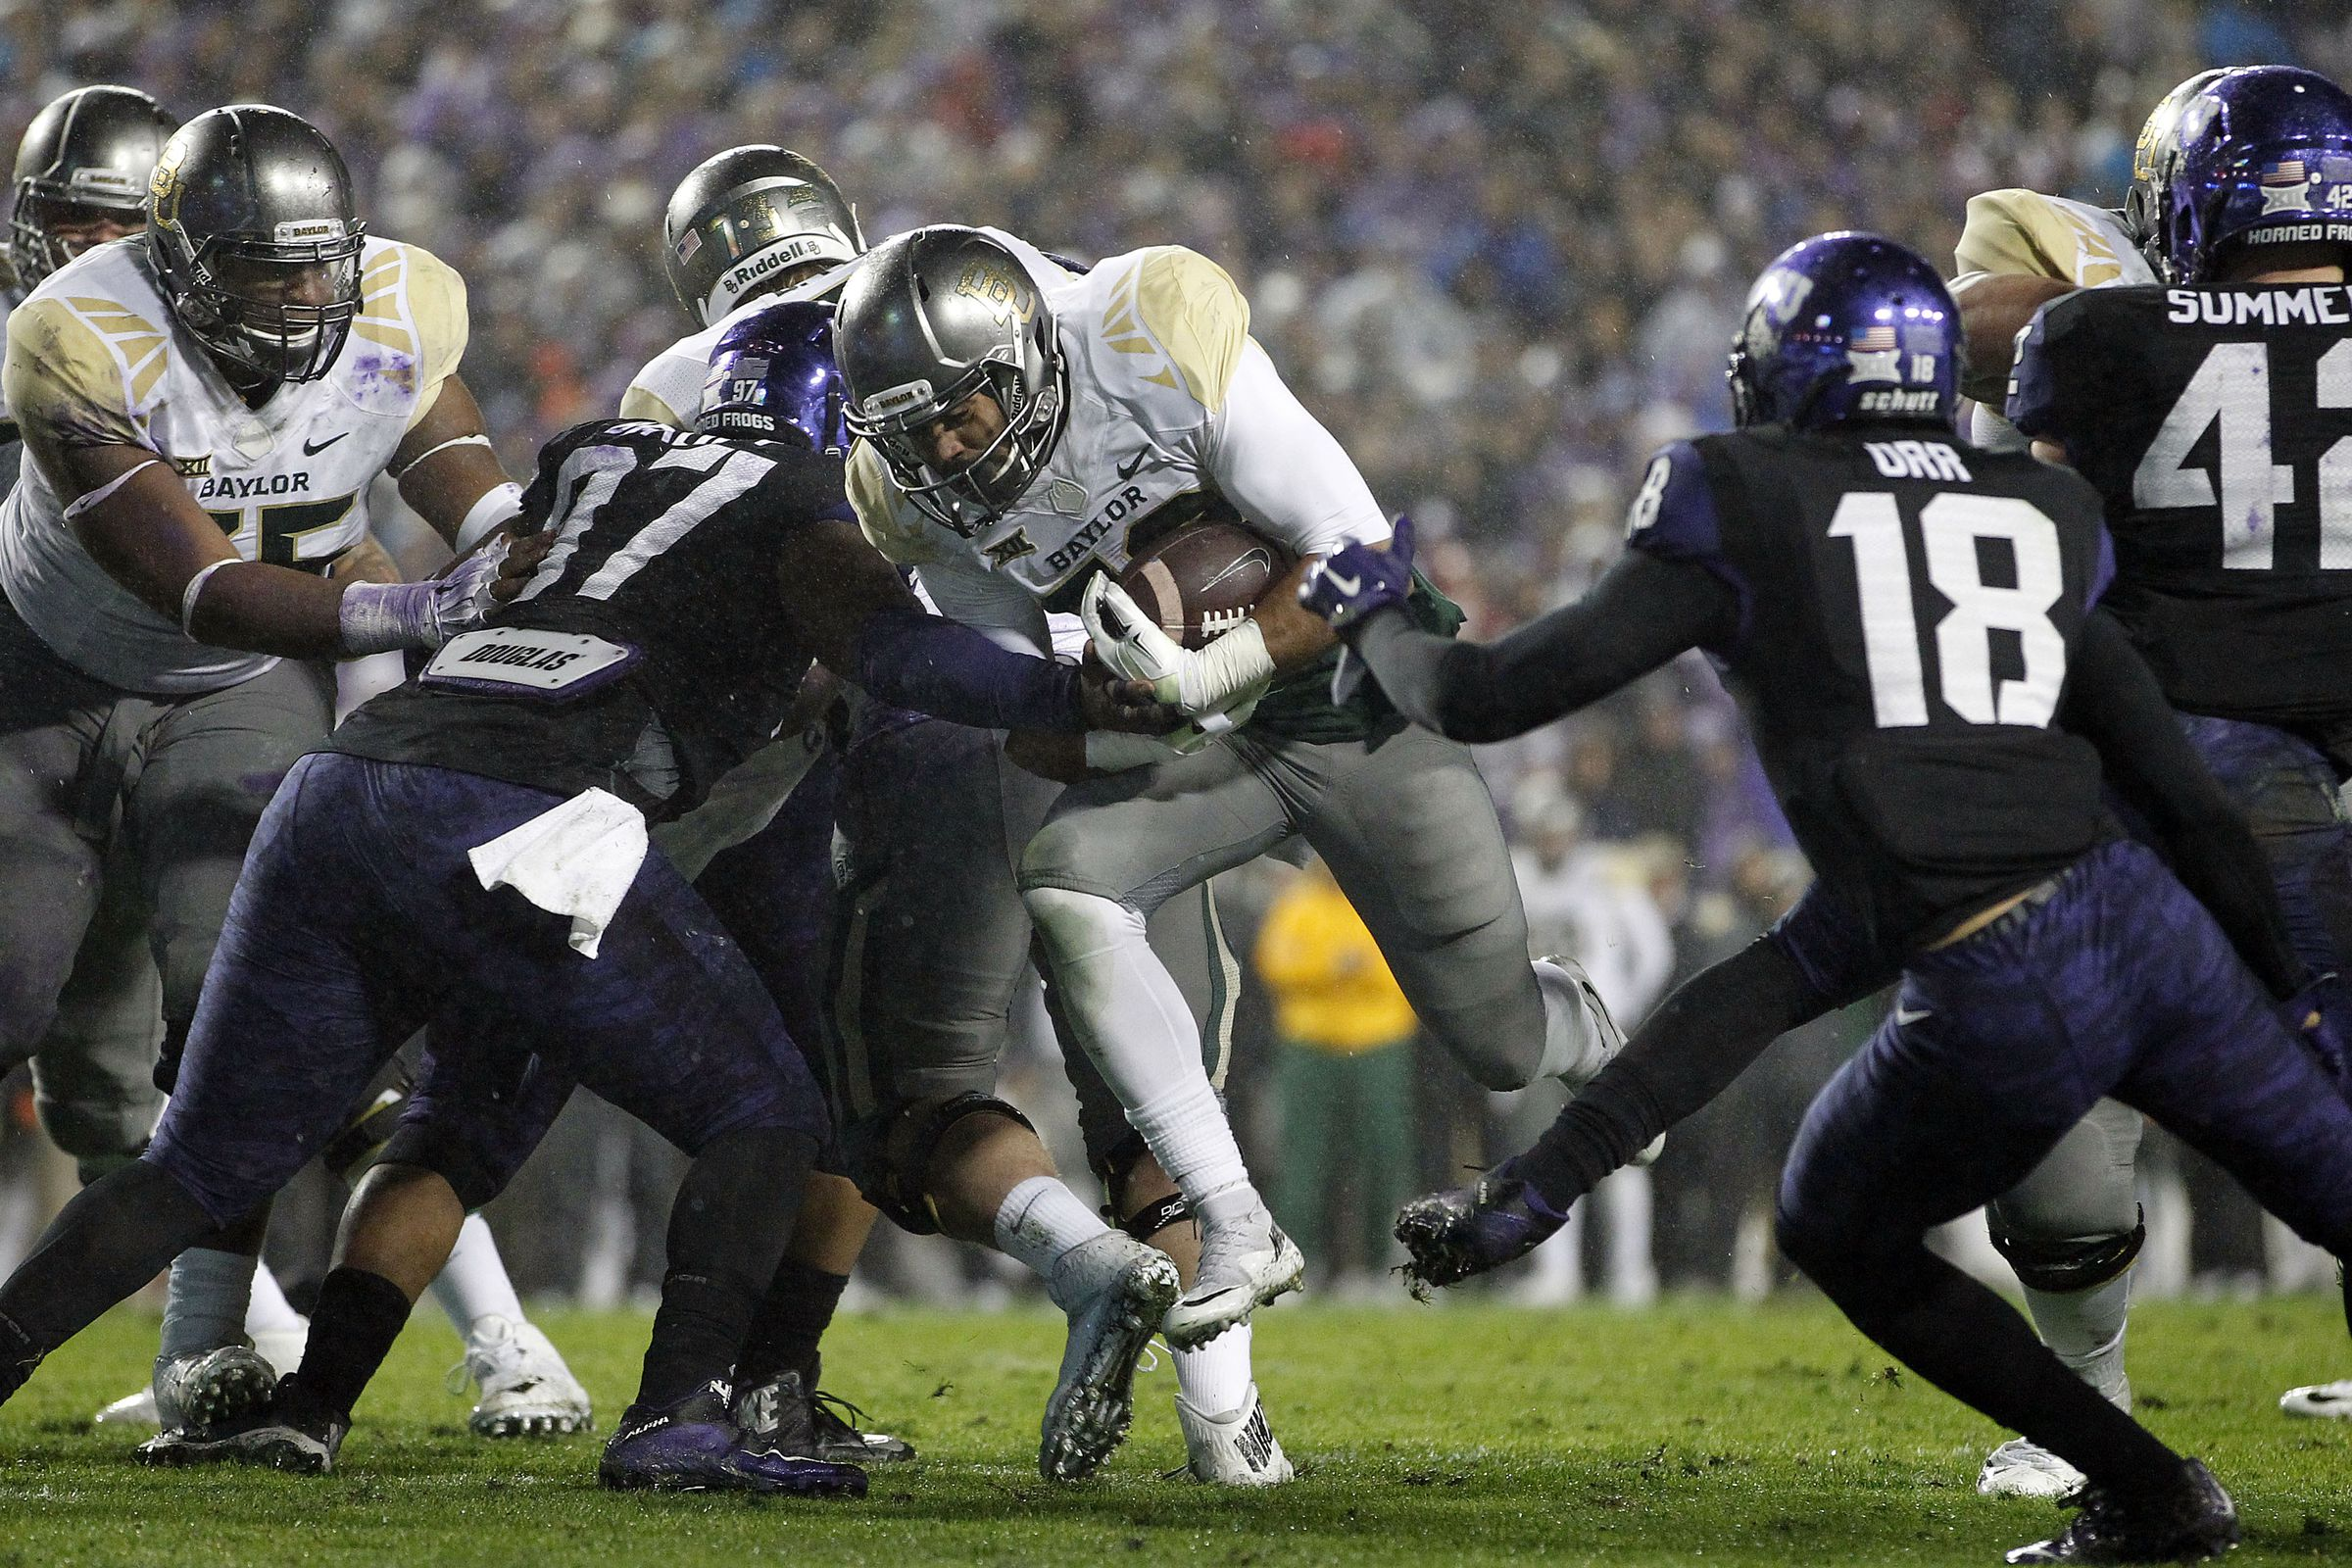 TCU rallies past Baylor in the rain and in OT, 28-21